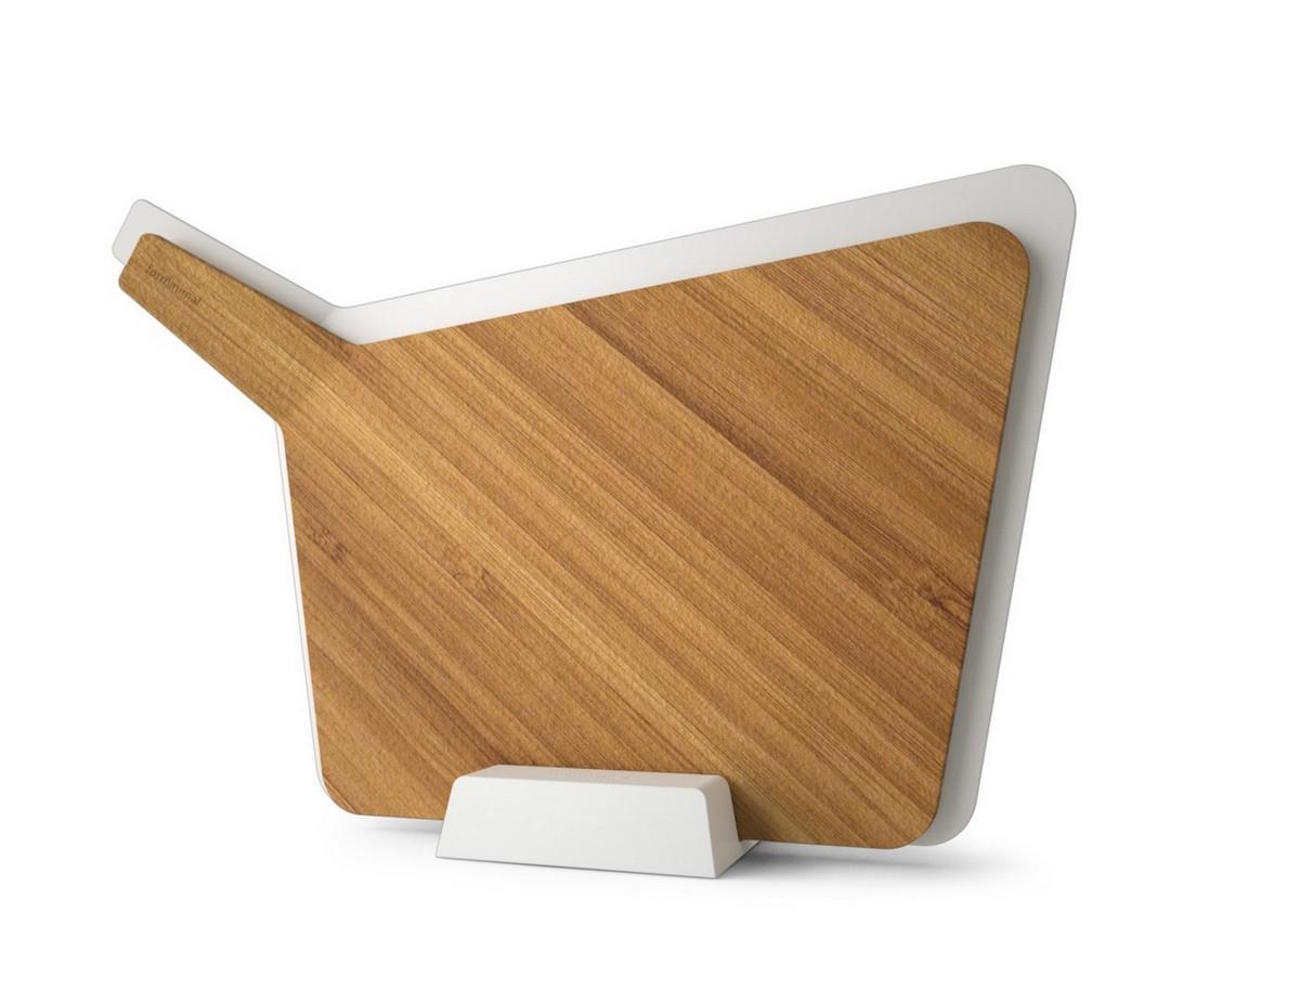 Chopping Board Set by Forminimal – Ergonomic Handles For Easy Pick Up